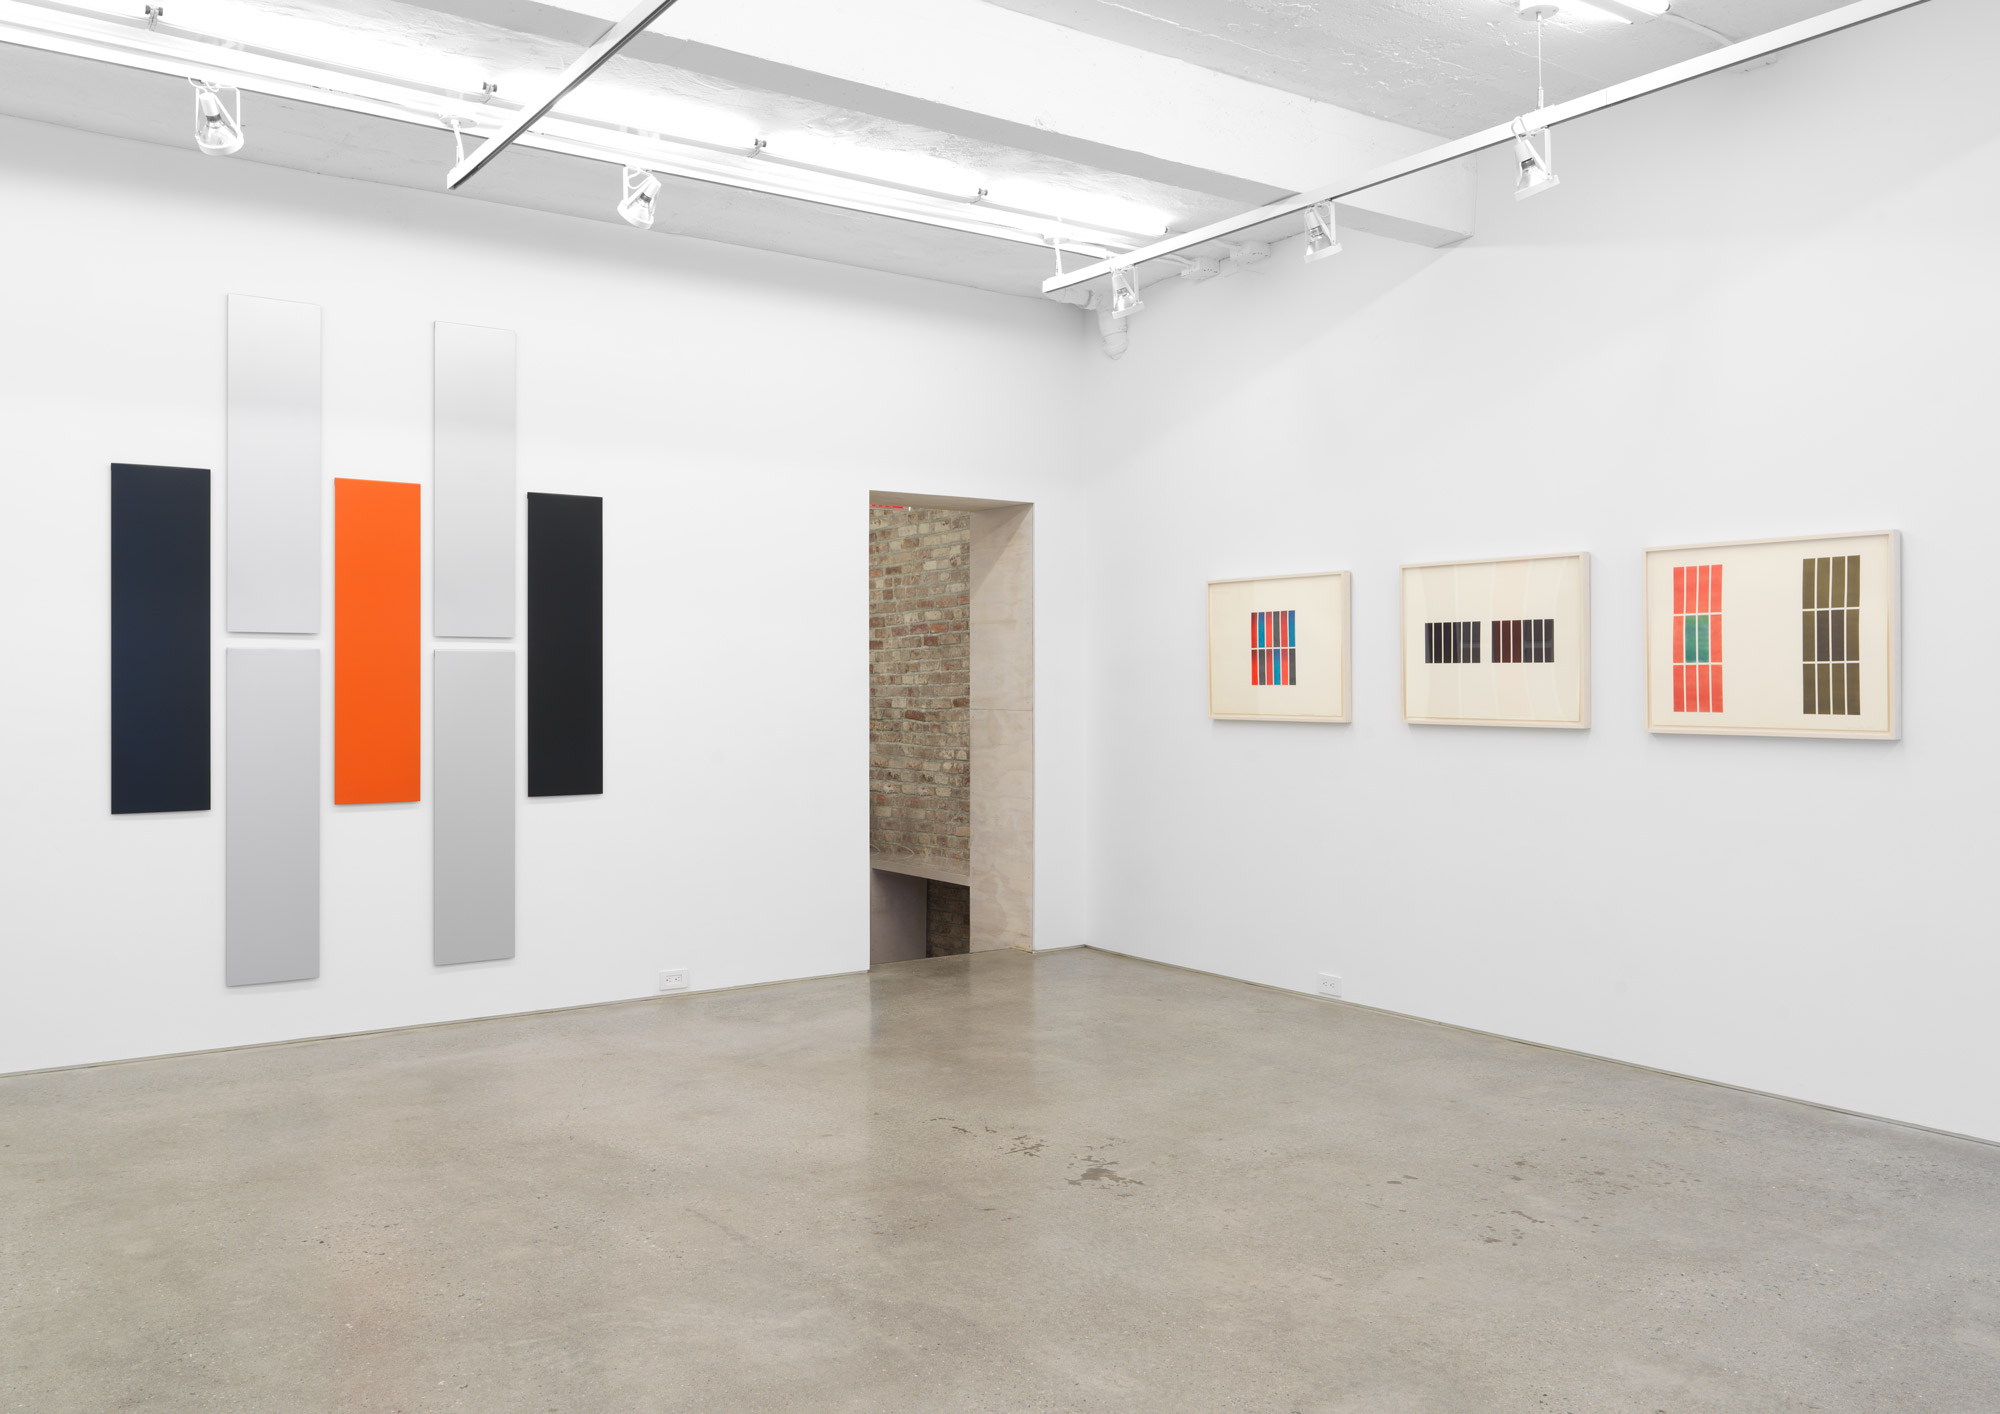 Installation view, Don Dudley: Early Work, Magenta Plains, New York, NY, 2019